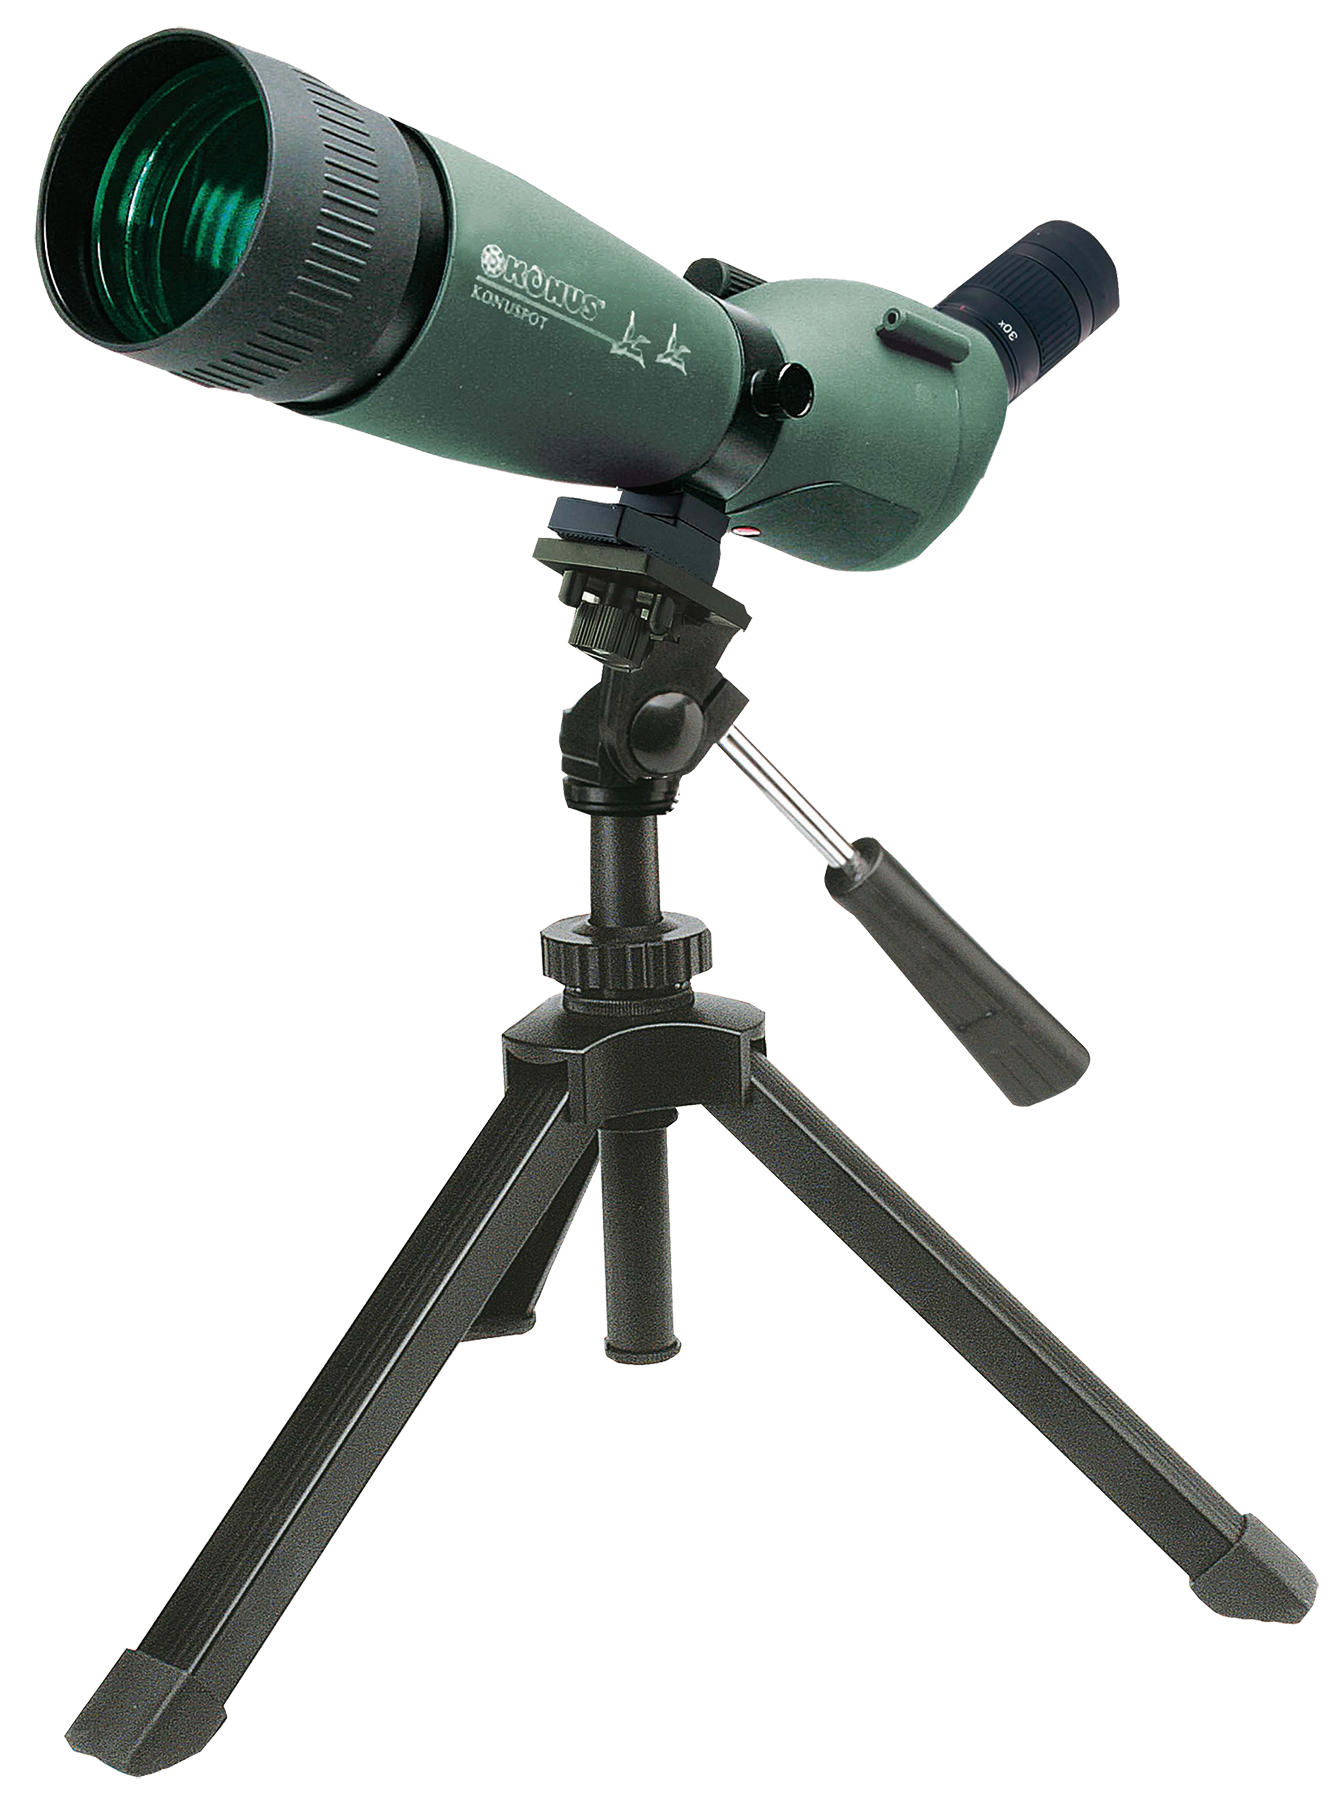 Konus 7120 KonuSpot 20-60x 80mm 79-41 ft @ 1000 yds FOV Angled Green w/Tripod, Photo Adapter, Case